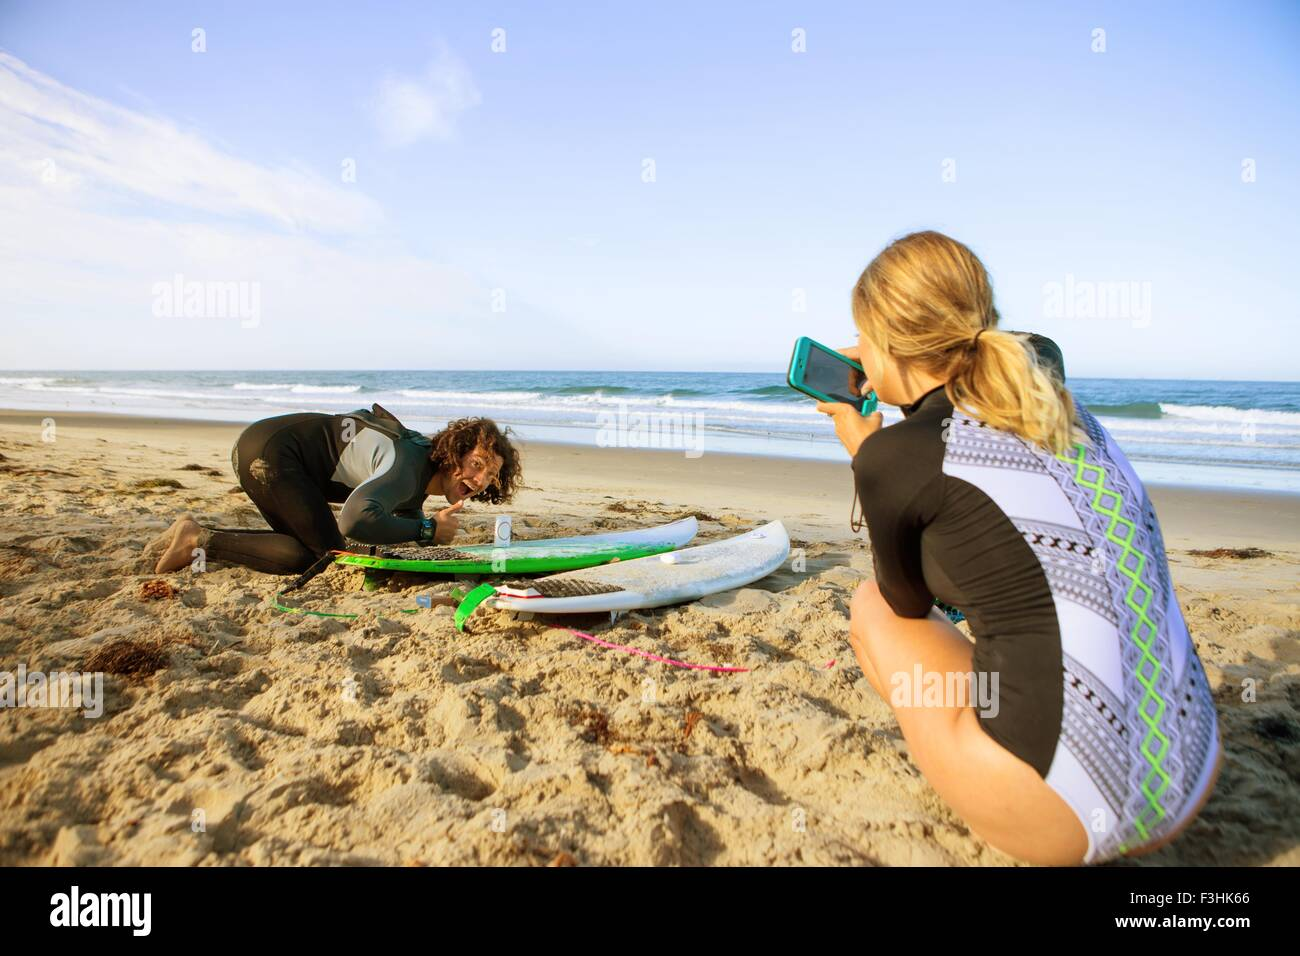 Couple on beach, young woman taking photograph of man with surfboard - Stock Image